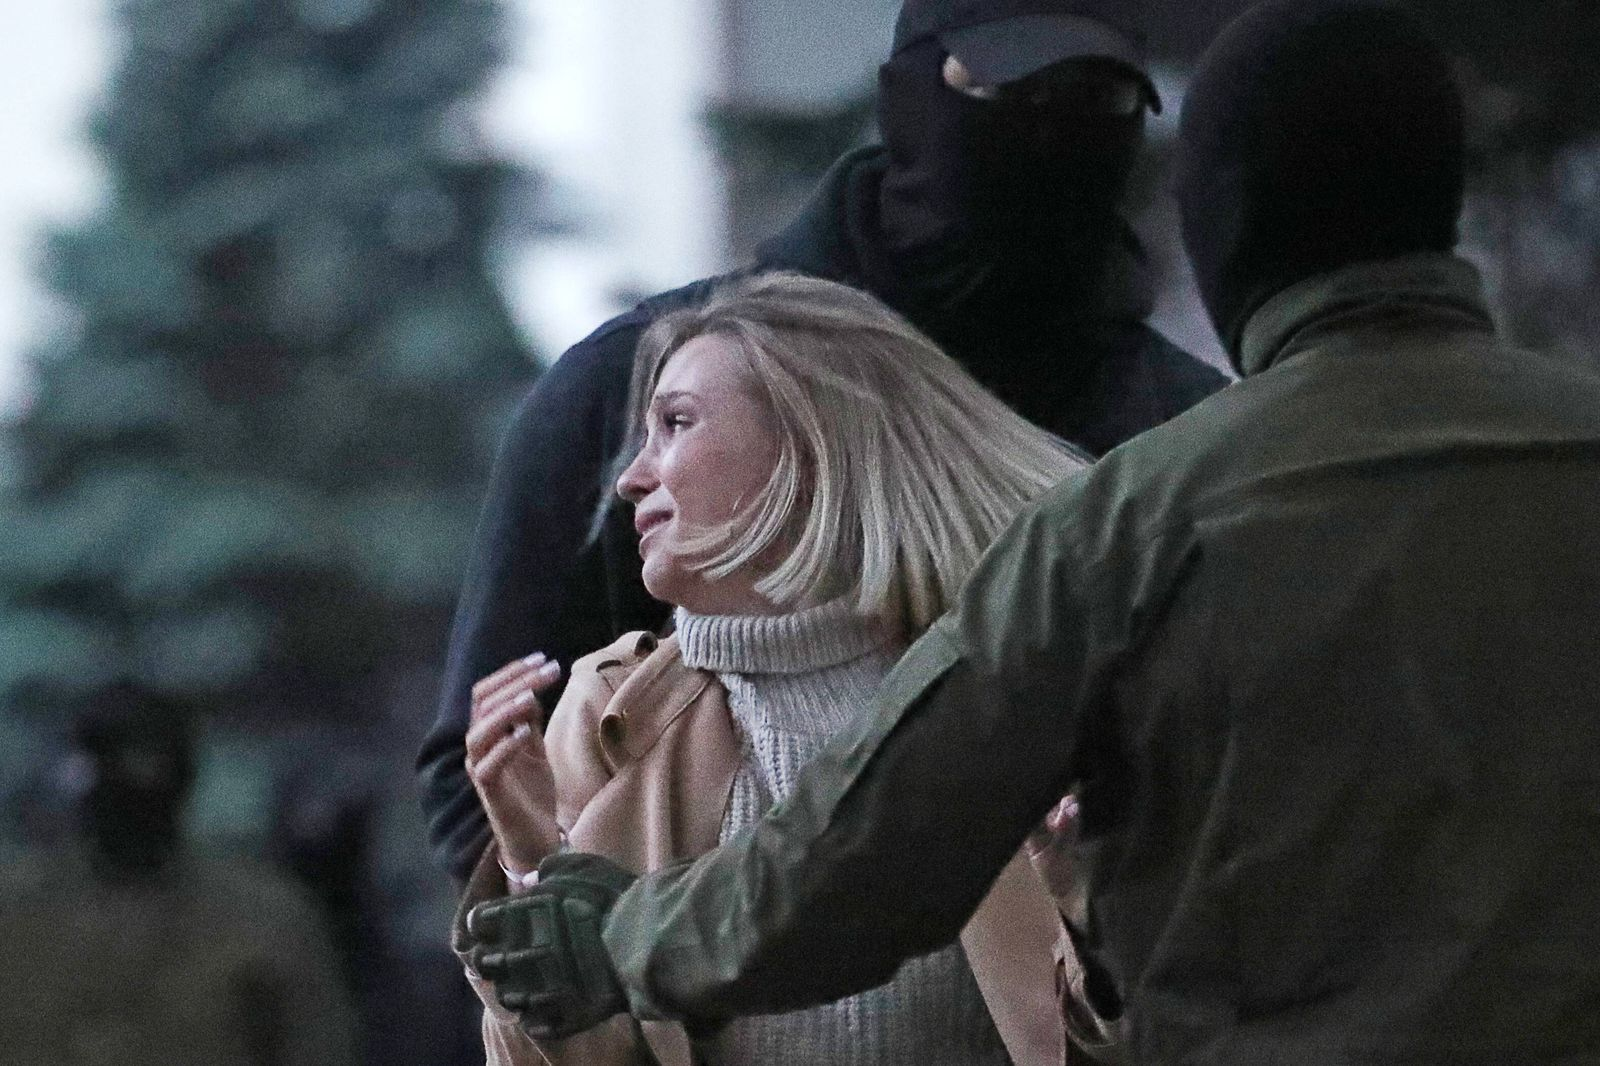 MINSK, BELARUS - SEPTEMBER 8, 2020: Law enforcement officers detain a woman during a march held by opposition activists